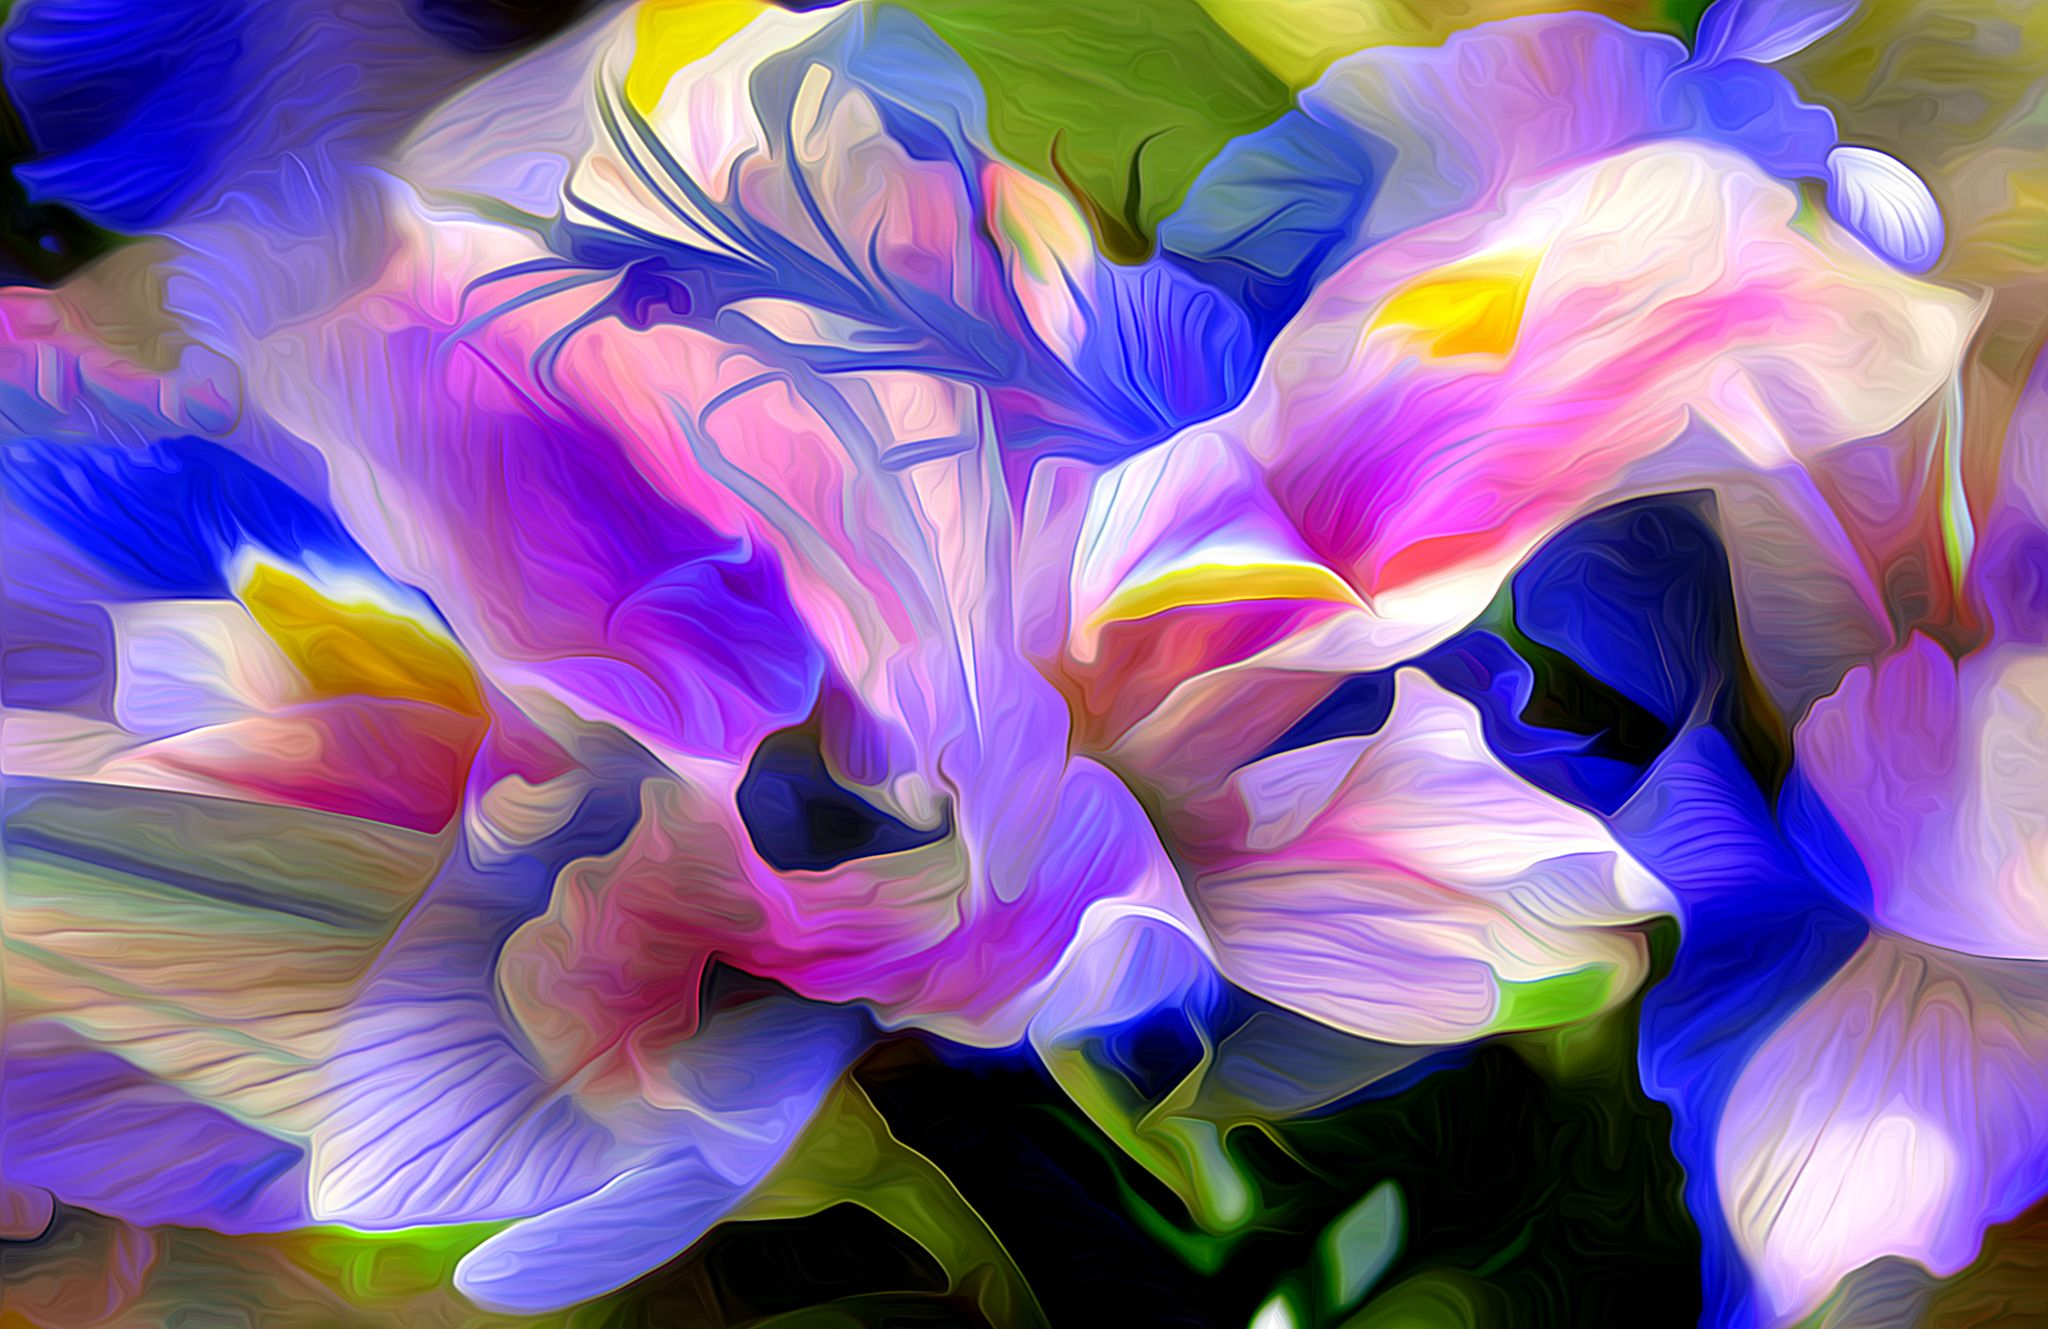 Free Colorful Flower Wallpaper Downloads: Free Download Water Color Purple Petals Flower Painting